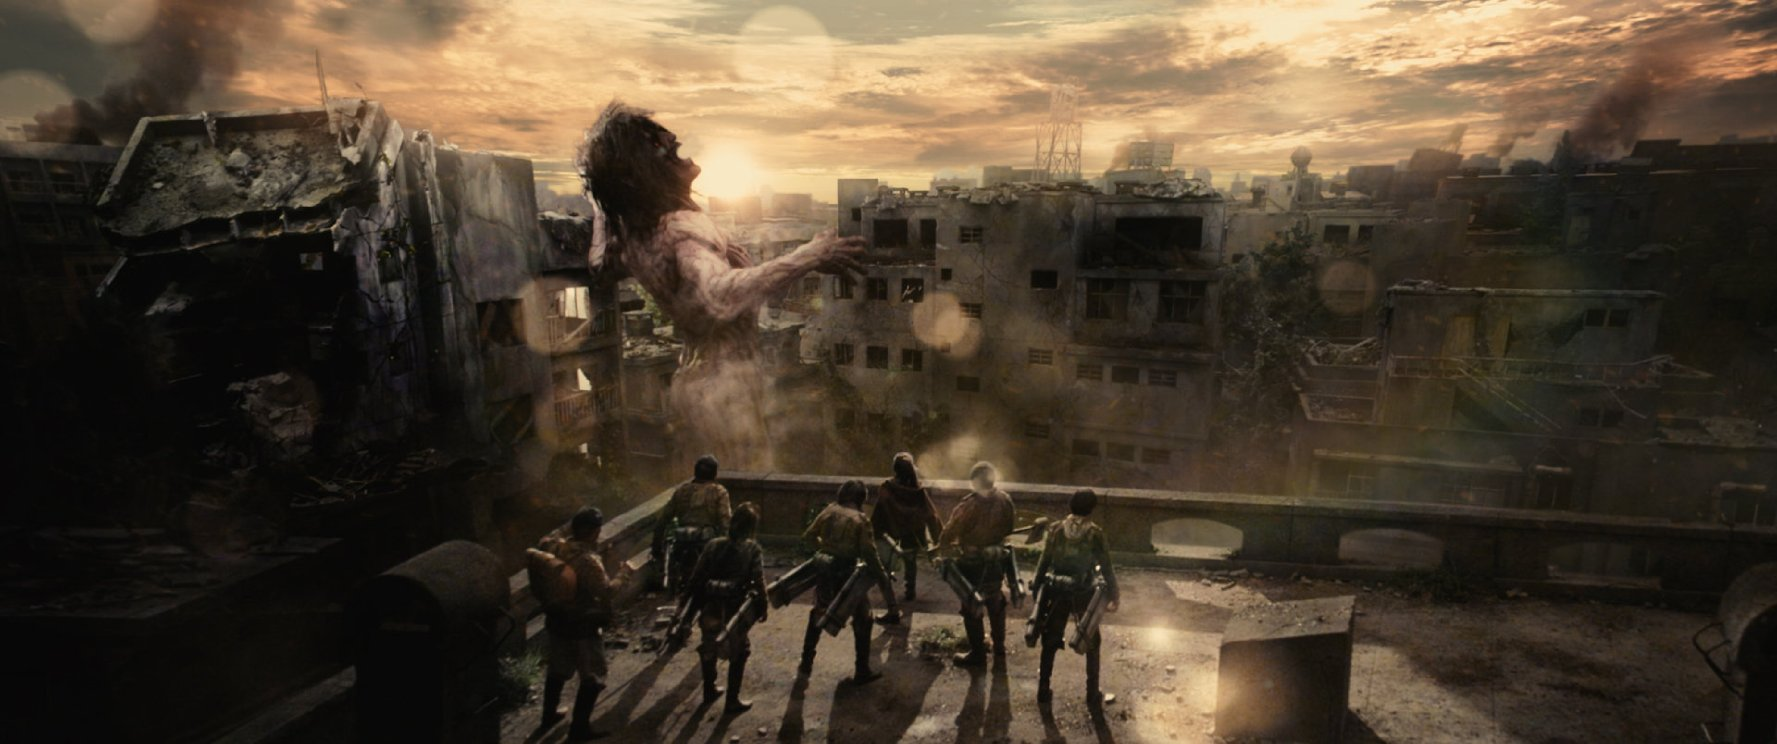 Attack On Titan Part 2: End of the World